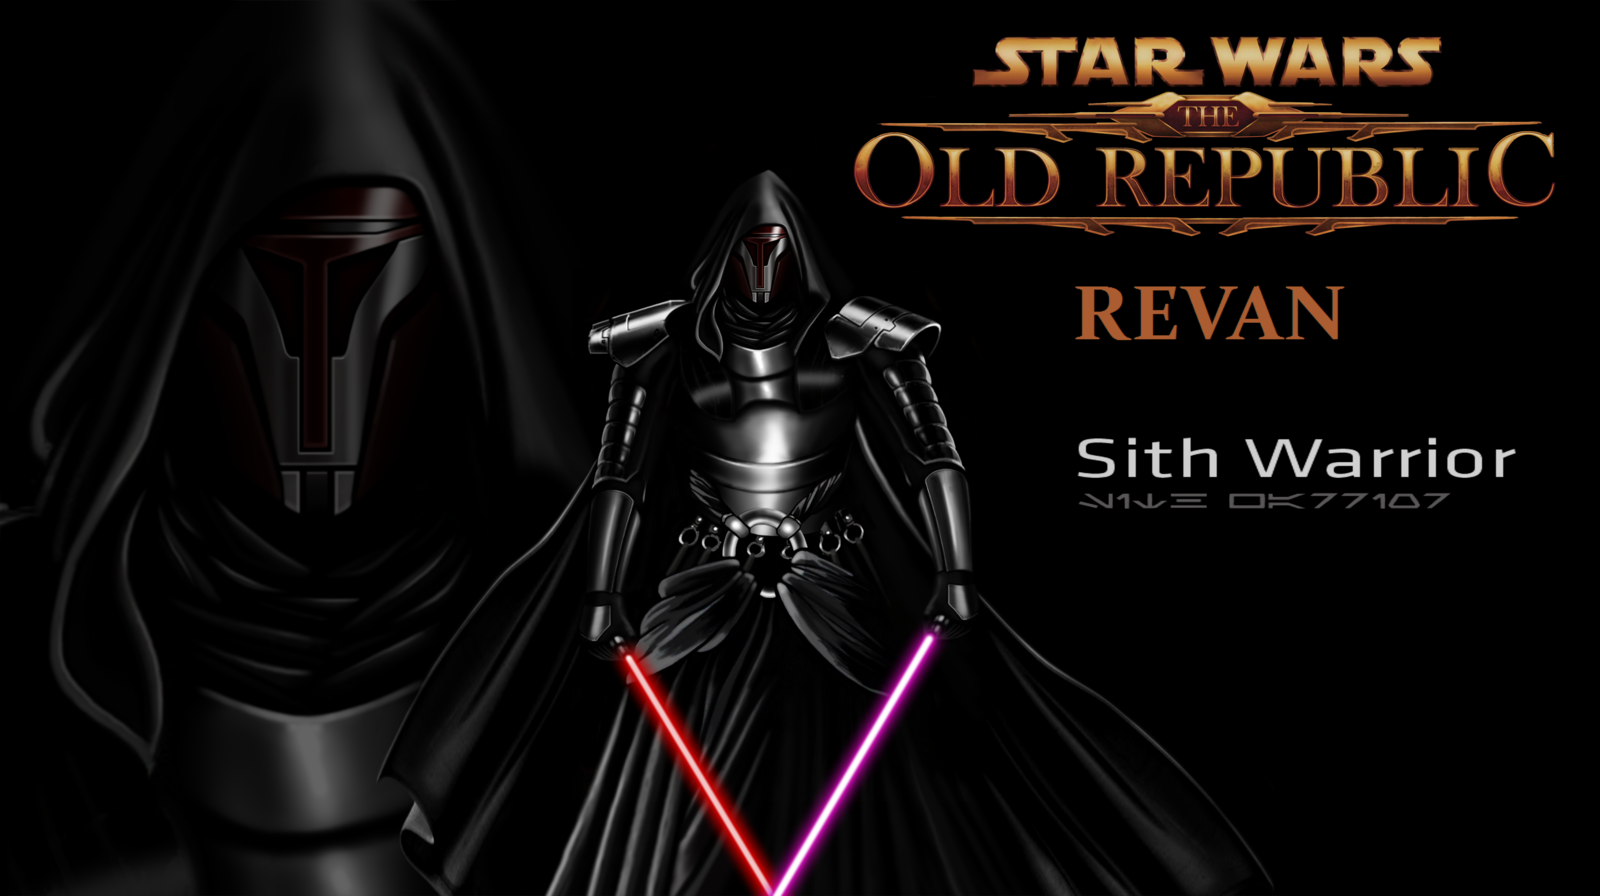 Star Wars Knights Of The Old Republic Wallpaper Hd Posted By John Peltier